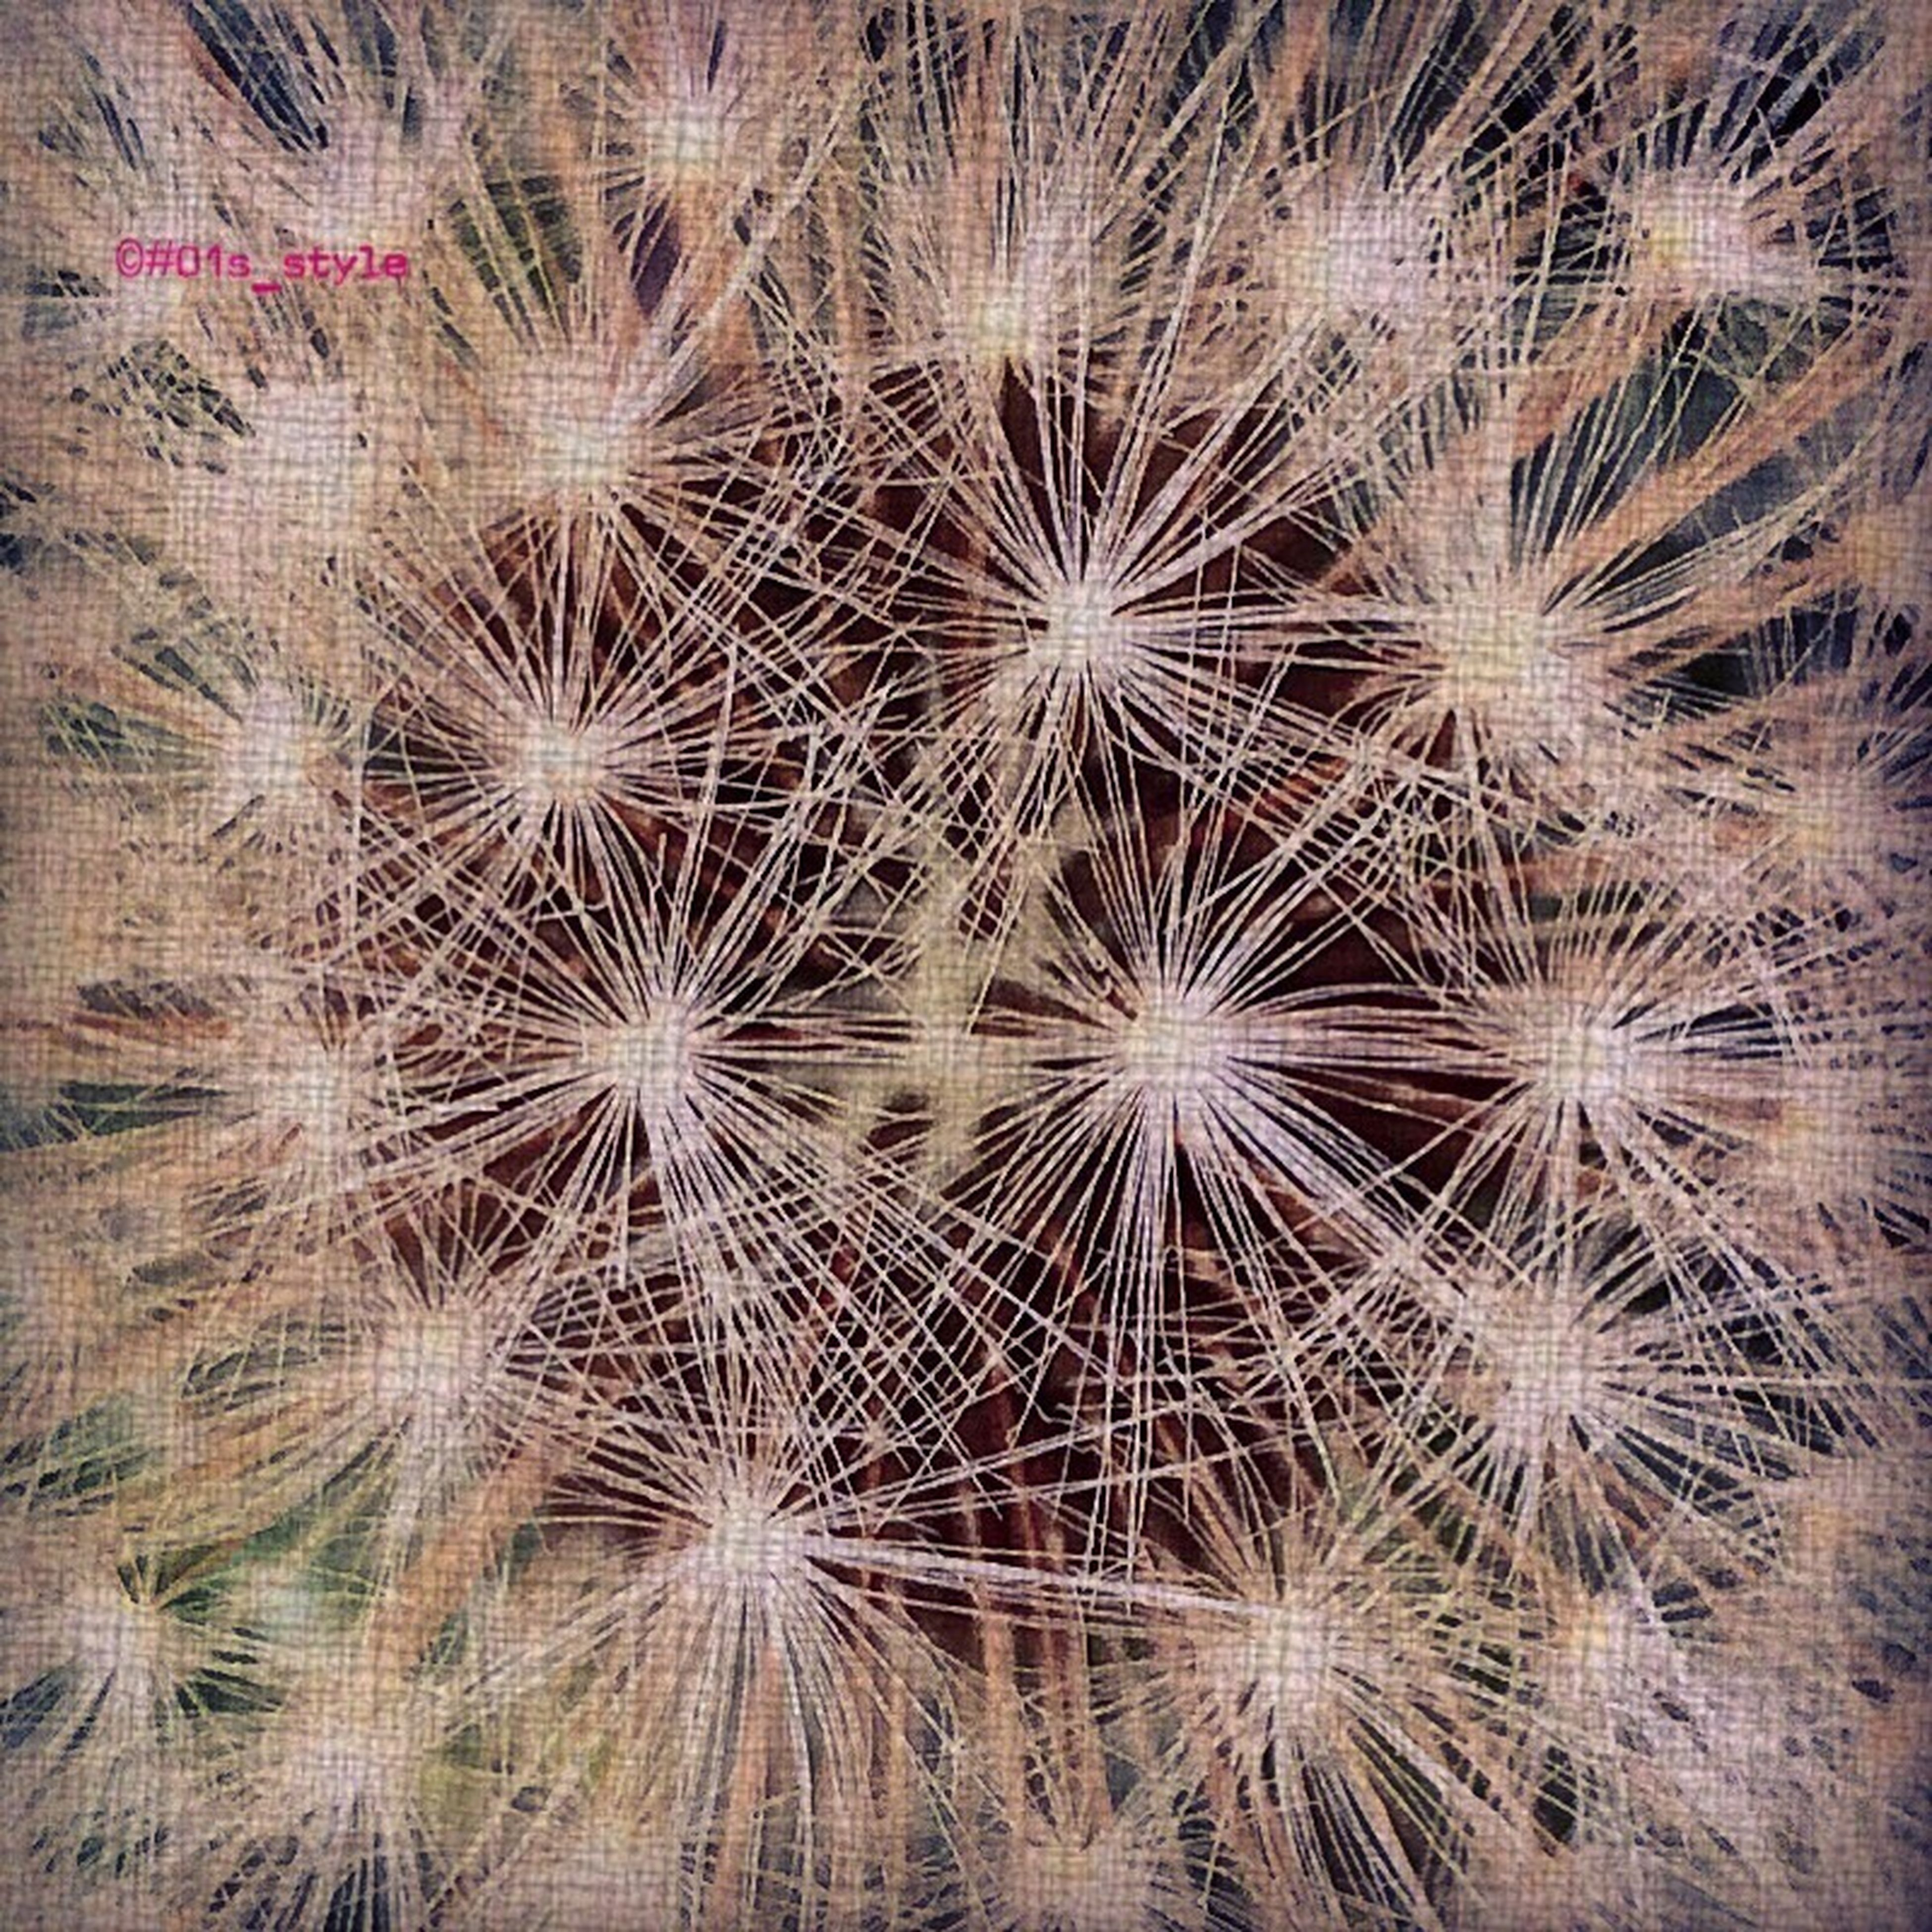 full frame, backgrounds, natural pattern, close-up, freshness, growth, nature, textured, beauty in nature, fragility, flower, pattern, no people, abundance, detail, high angle view, flower head, dandelion, macro, extreme close-up